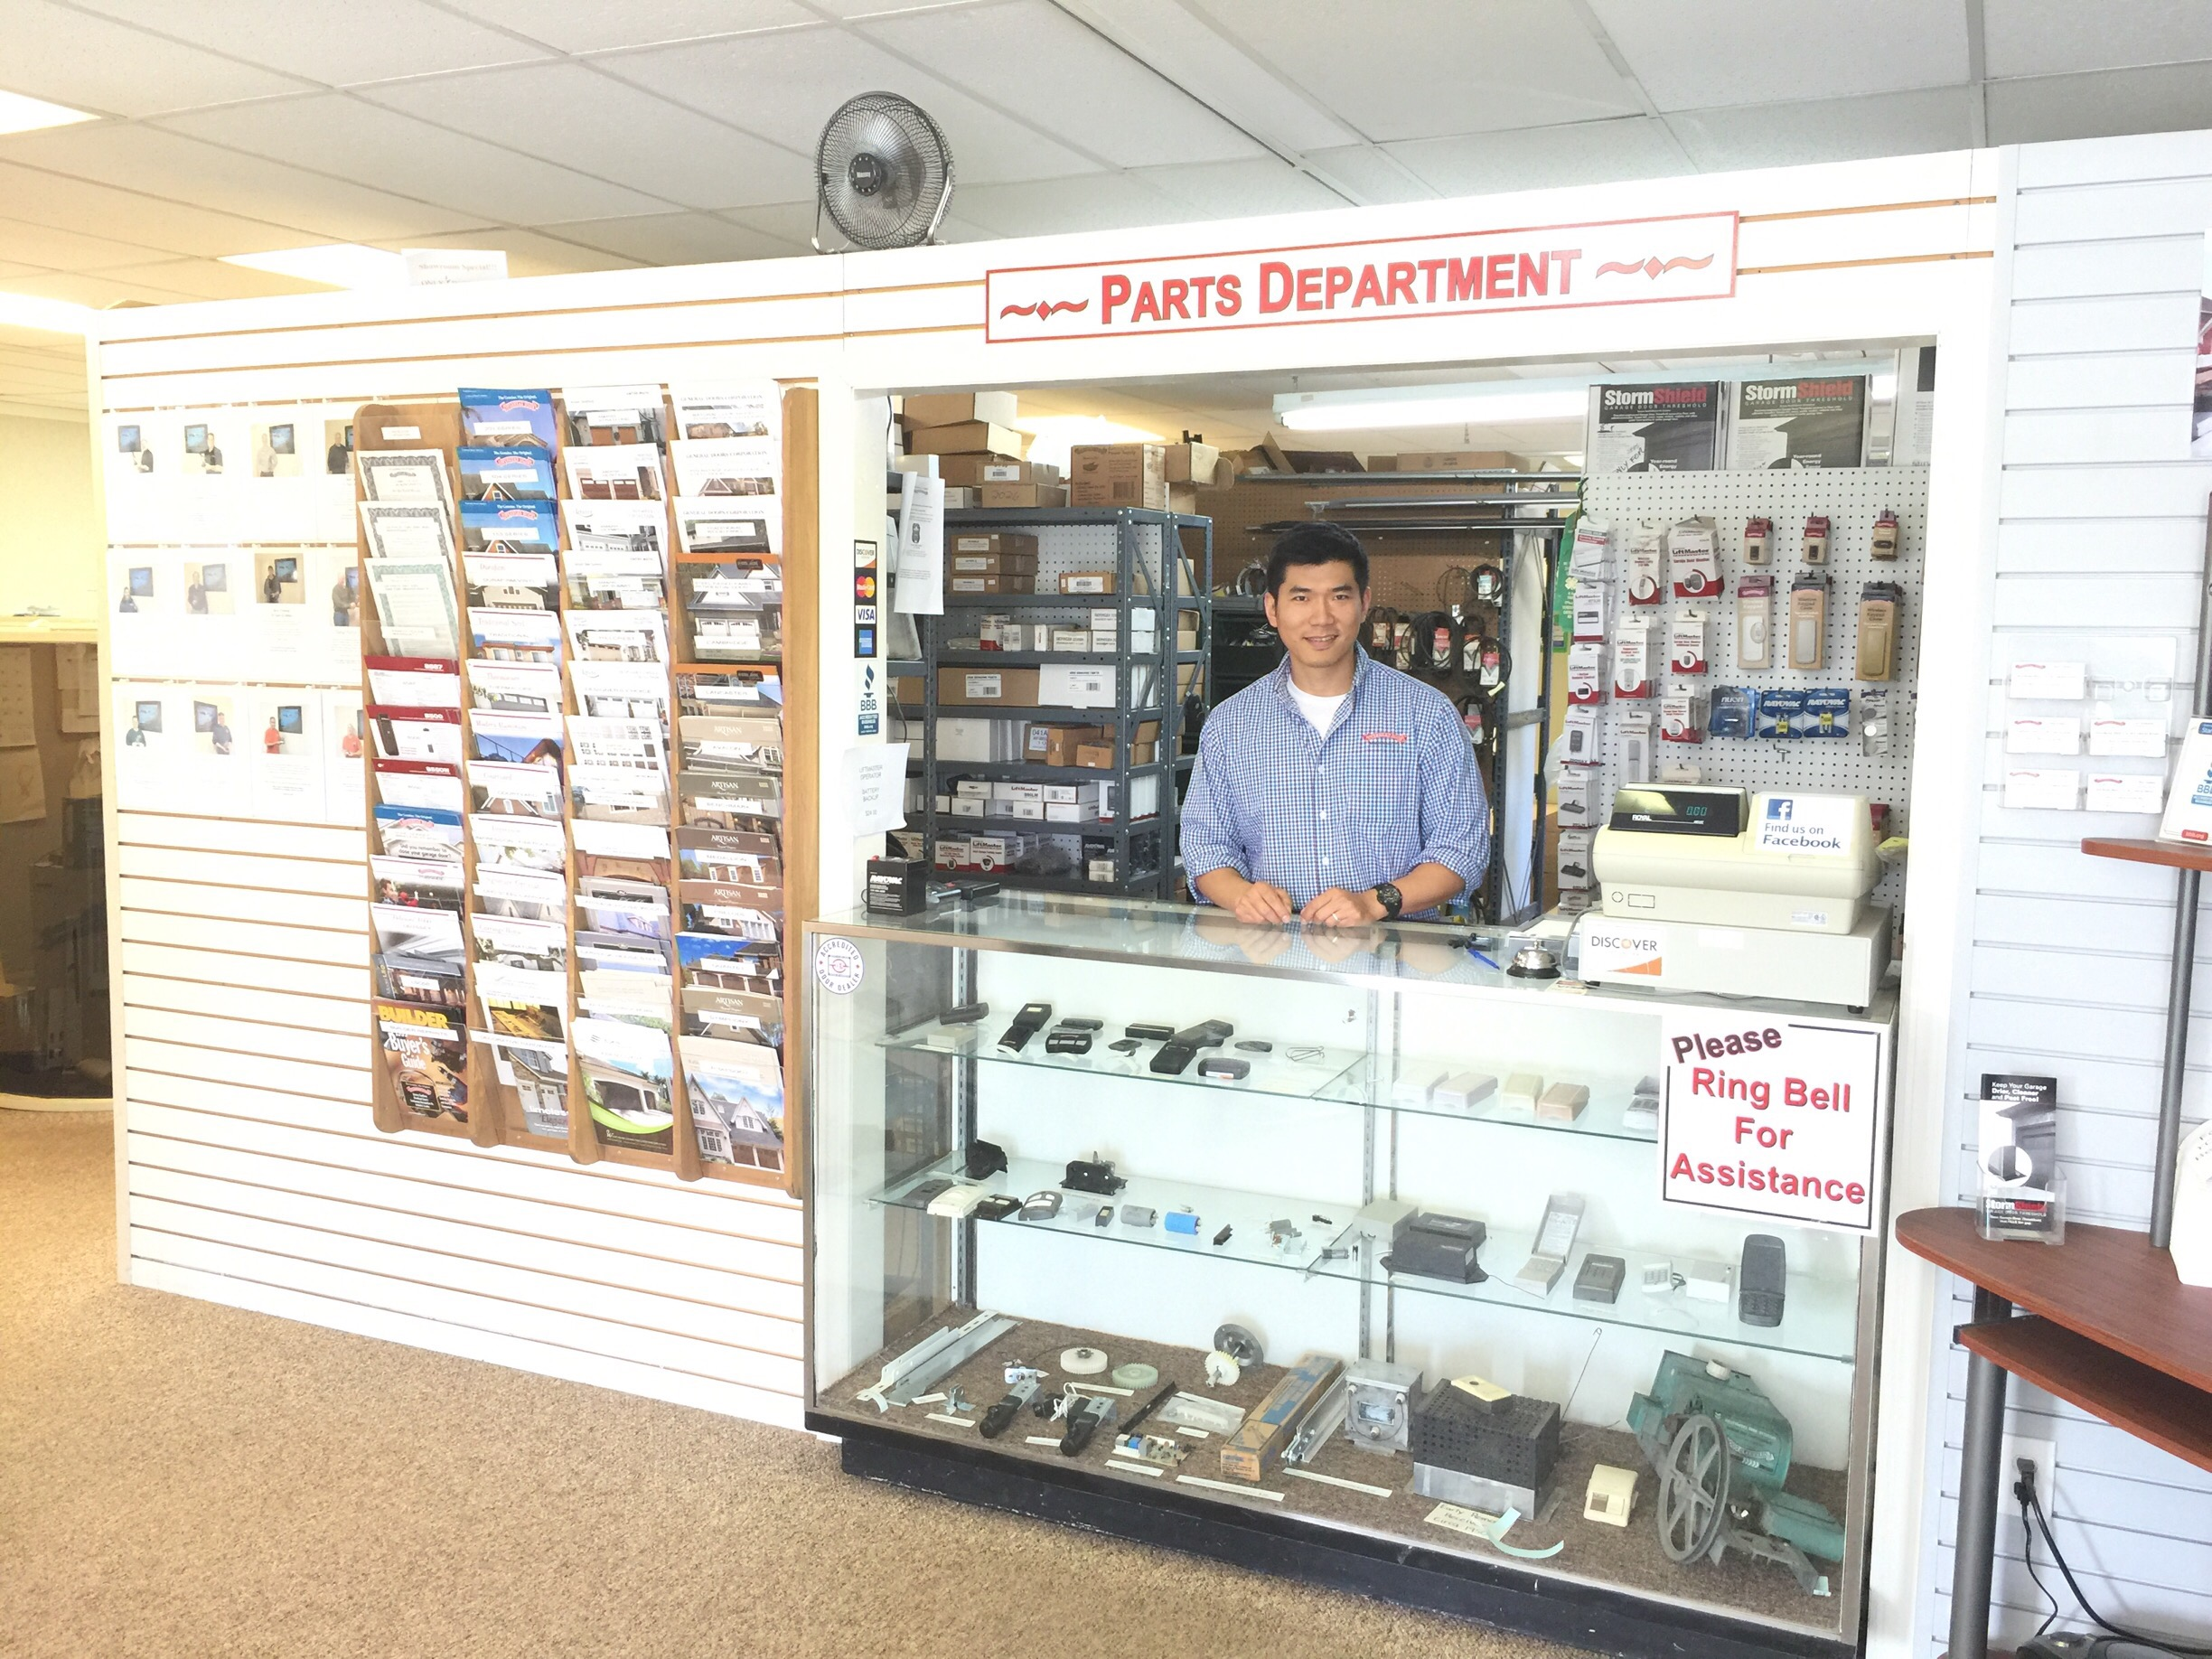 Garage-Door-Opener-Remotes-Parts-Store-Counter.jpg